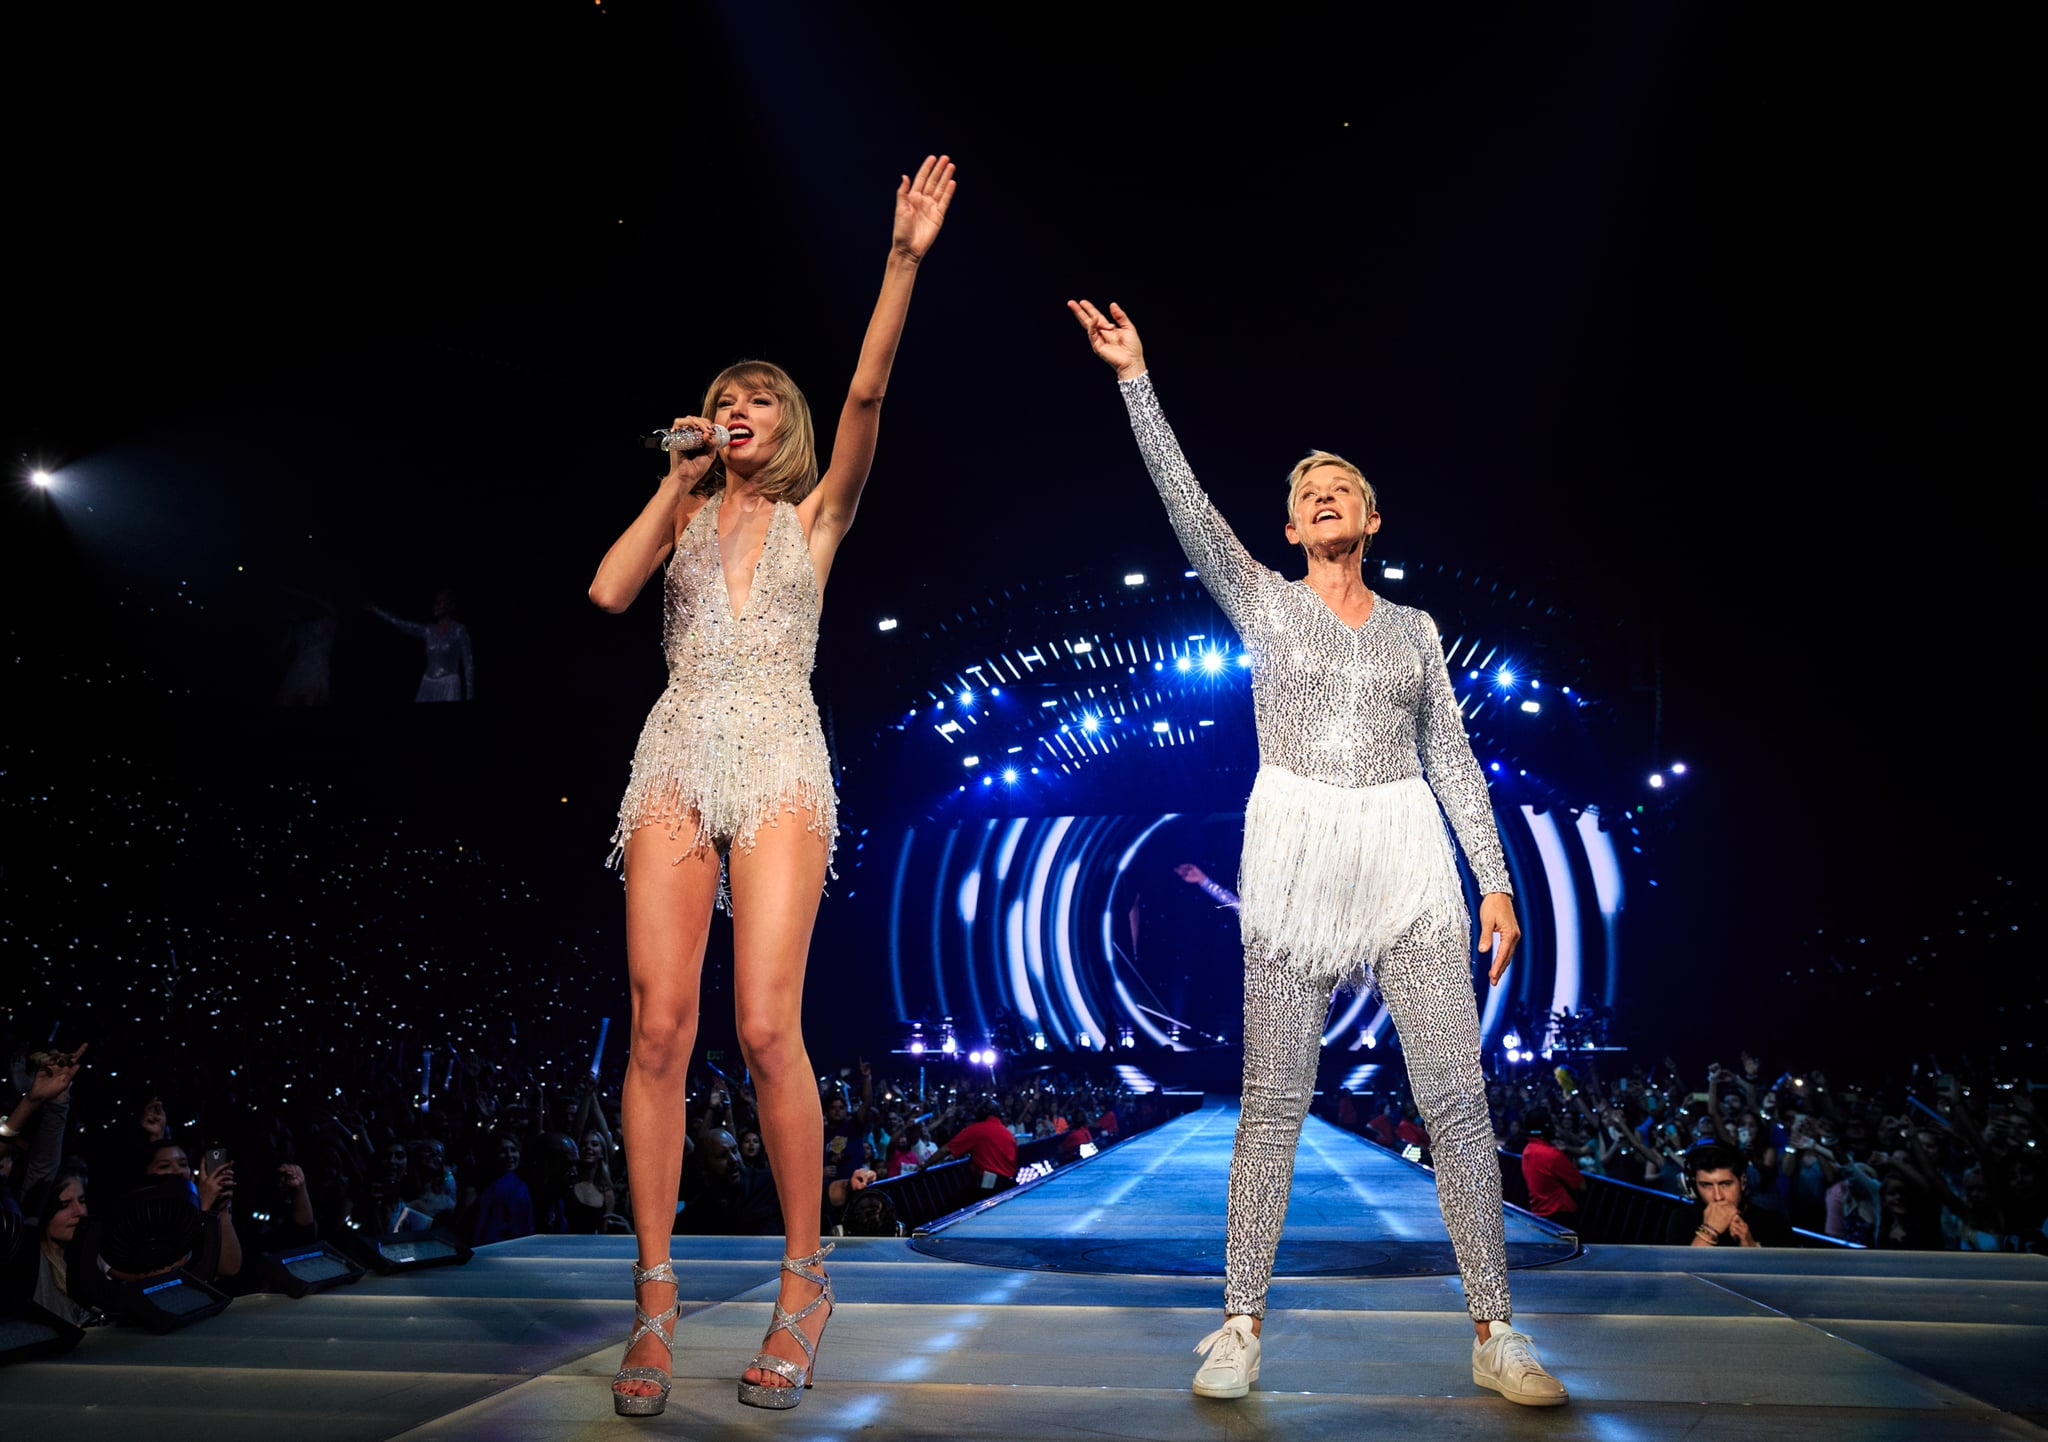 2015 Taylor Swift Brought Out Almost Every Celebrity On Her 1989 Tour 10 Moments From The Last Decade That Will Make You Say Holy Sh T That Really Happened Popsugar Celebrity Photo 7